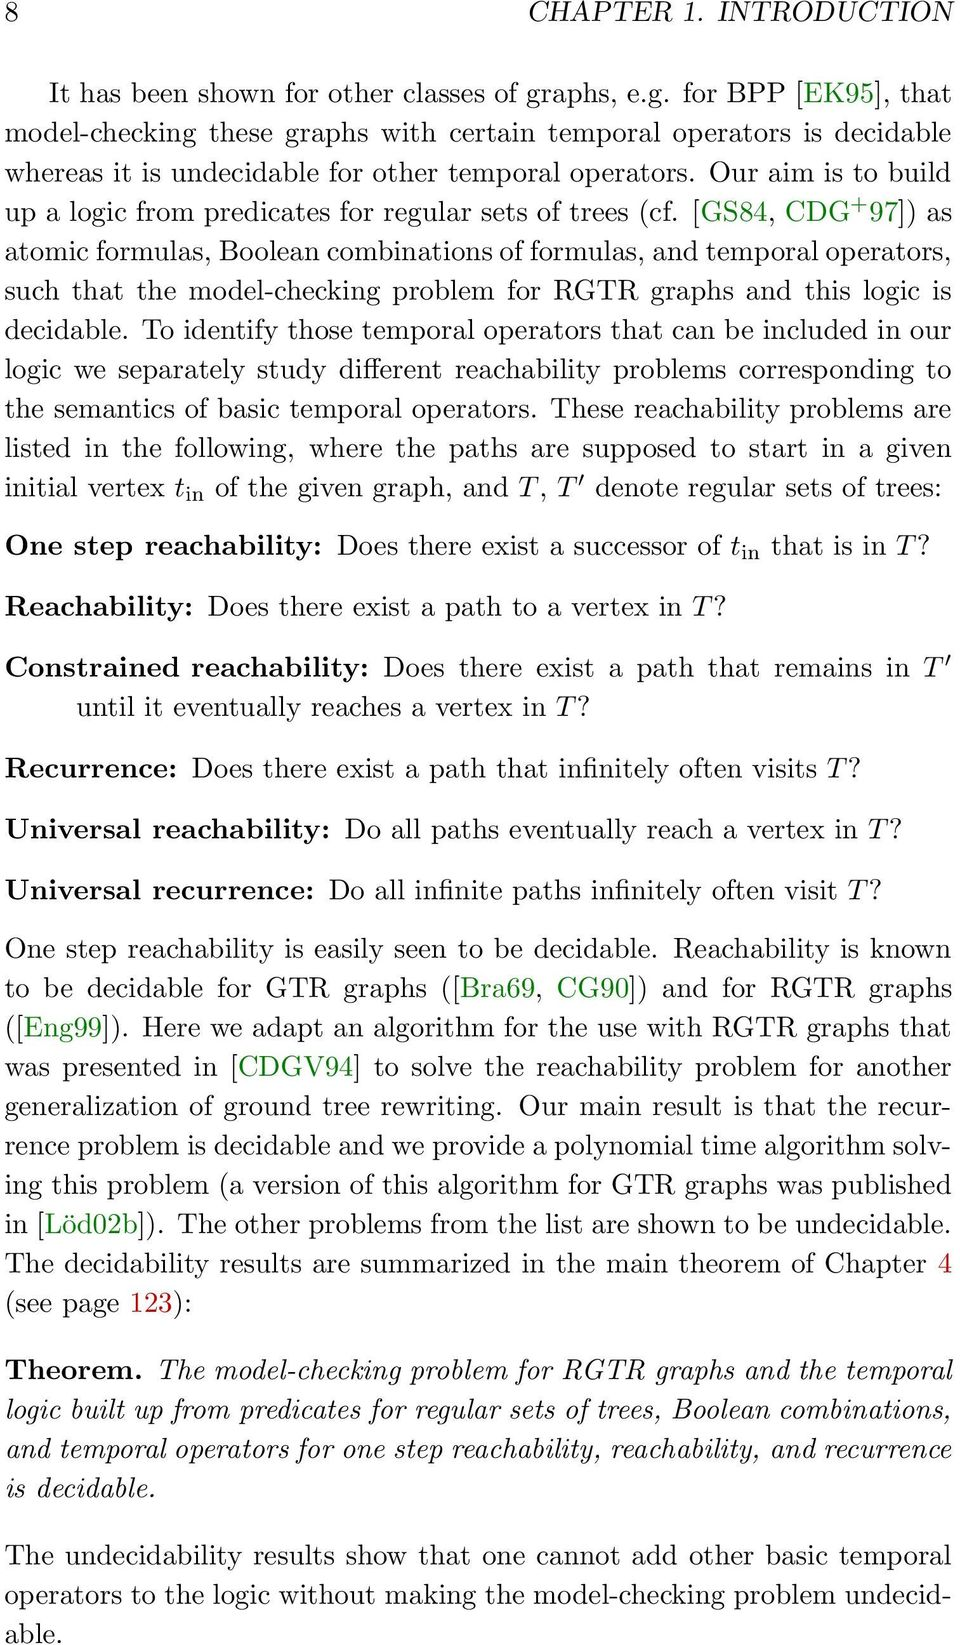 such that the model-checking problem for GT graphs and this logic is decidable To identify those temporal operators that can be included in our logic we separately study different reachability